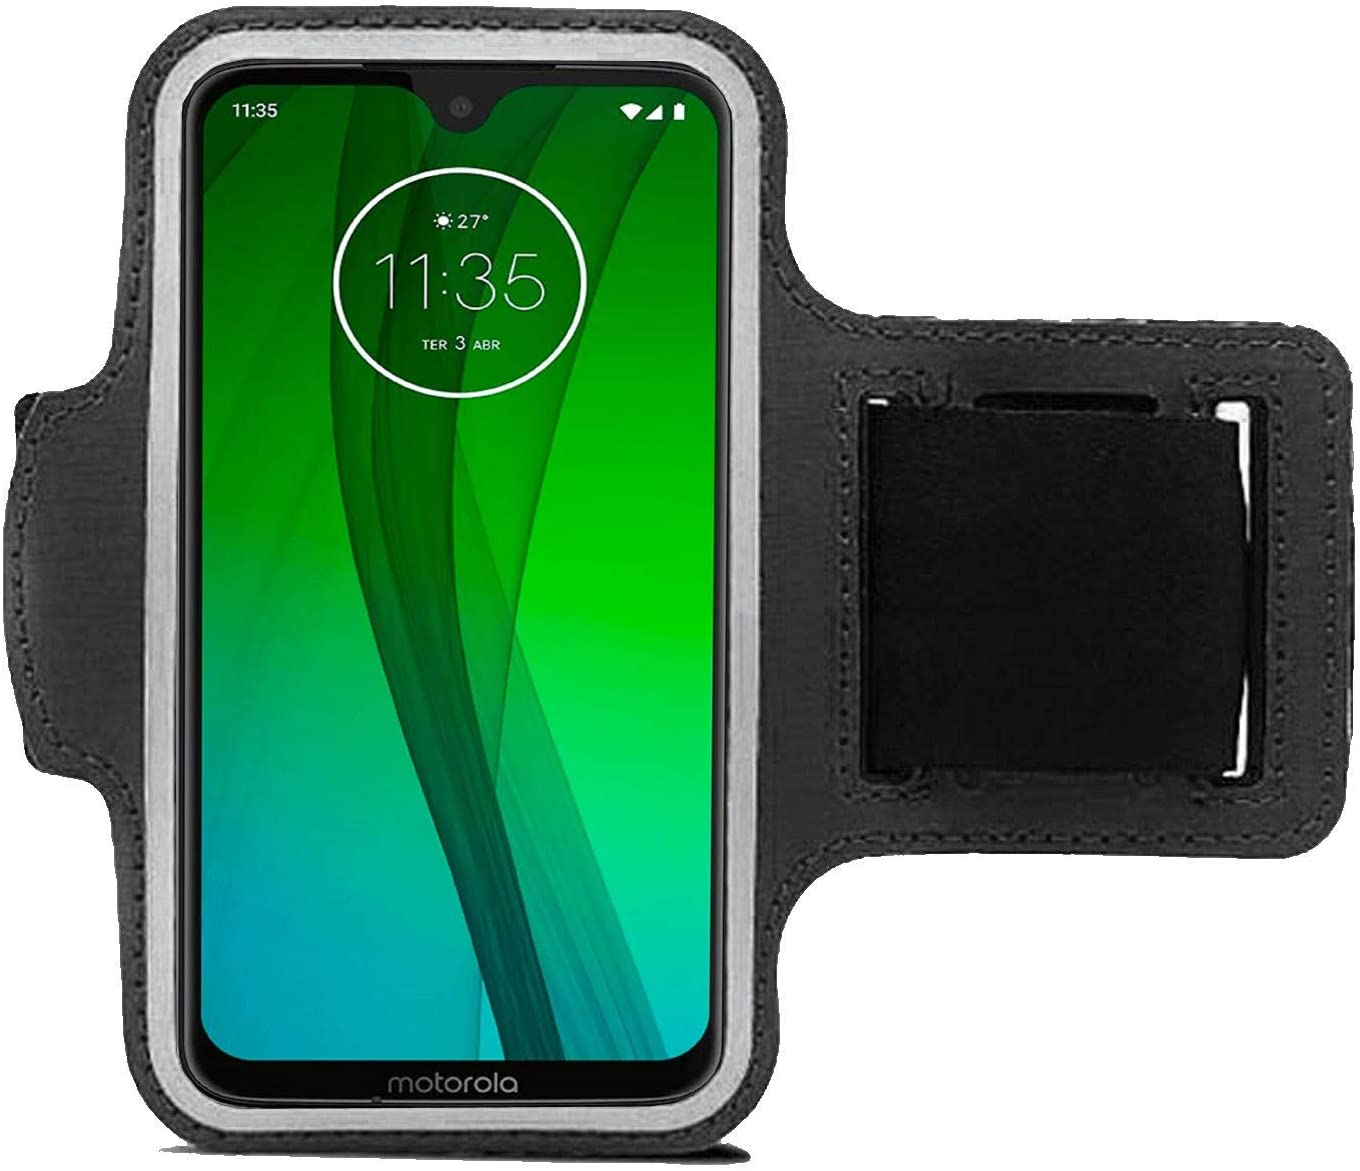 G8 Power Lite Adjustable Phone Arm Case for Moto E E6s 2020 Running Armband for Motorola//One Fusion Plus G Power Sports Mobile Phone Bag for Outdoor Exersise Biking with Key Holder